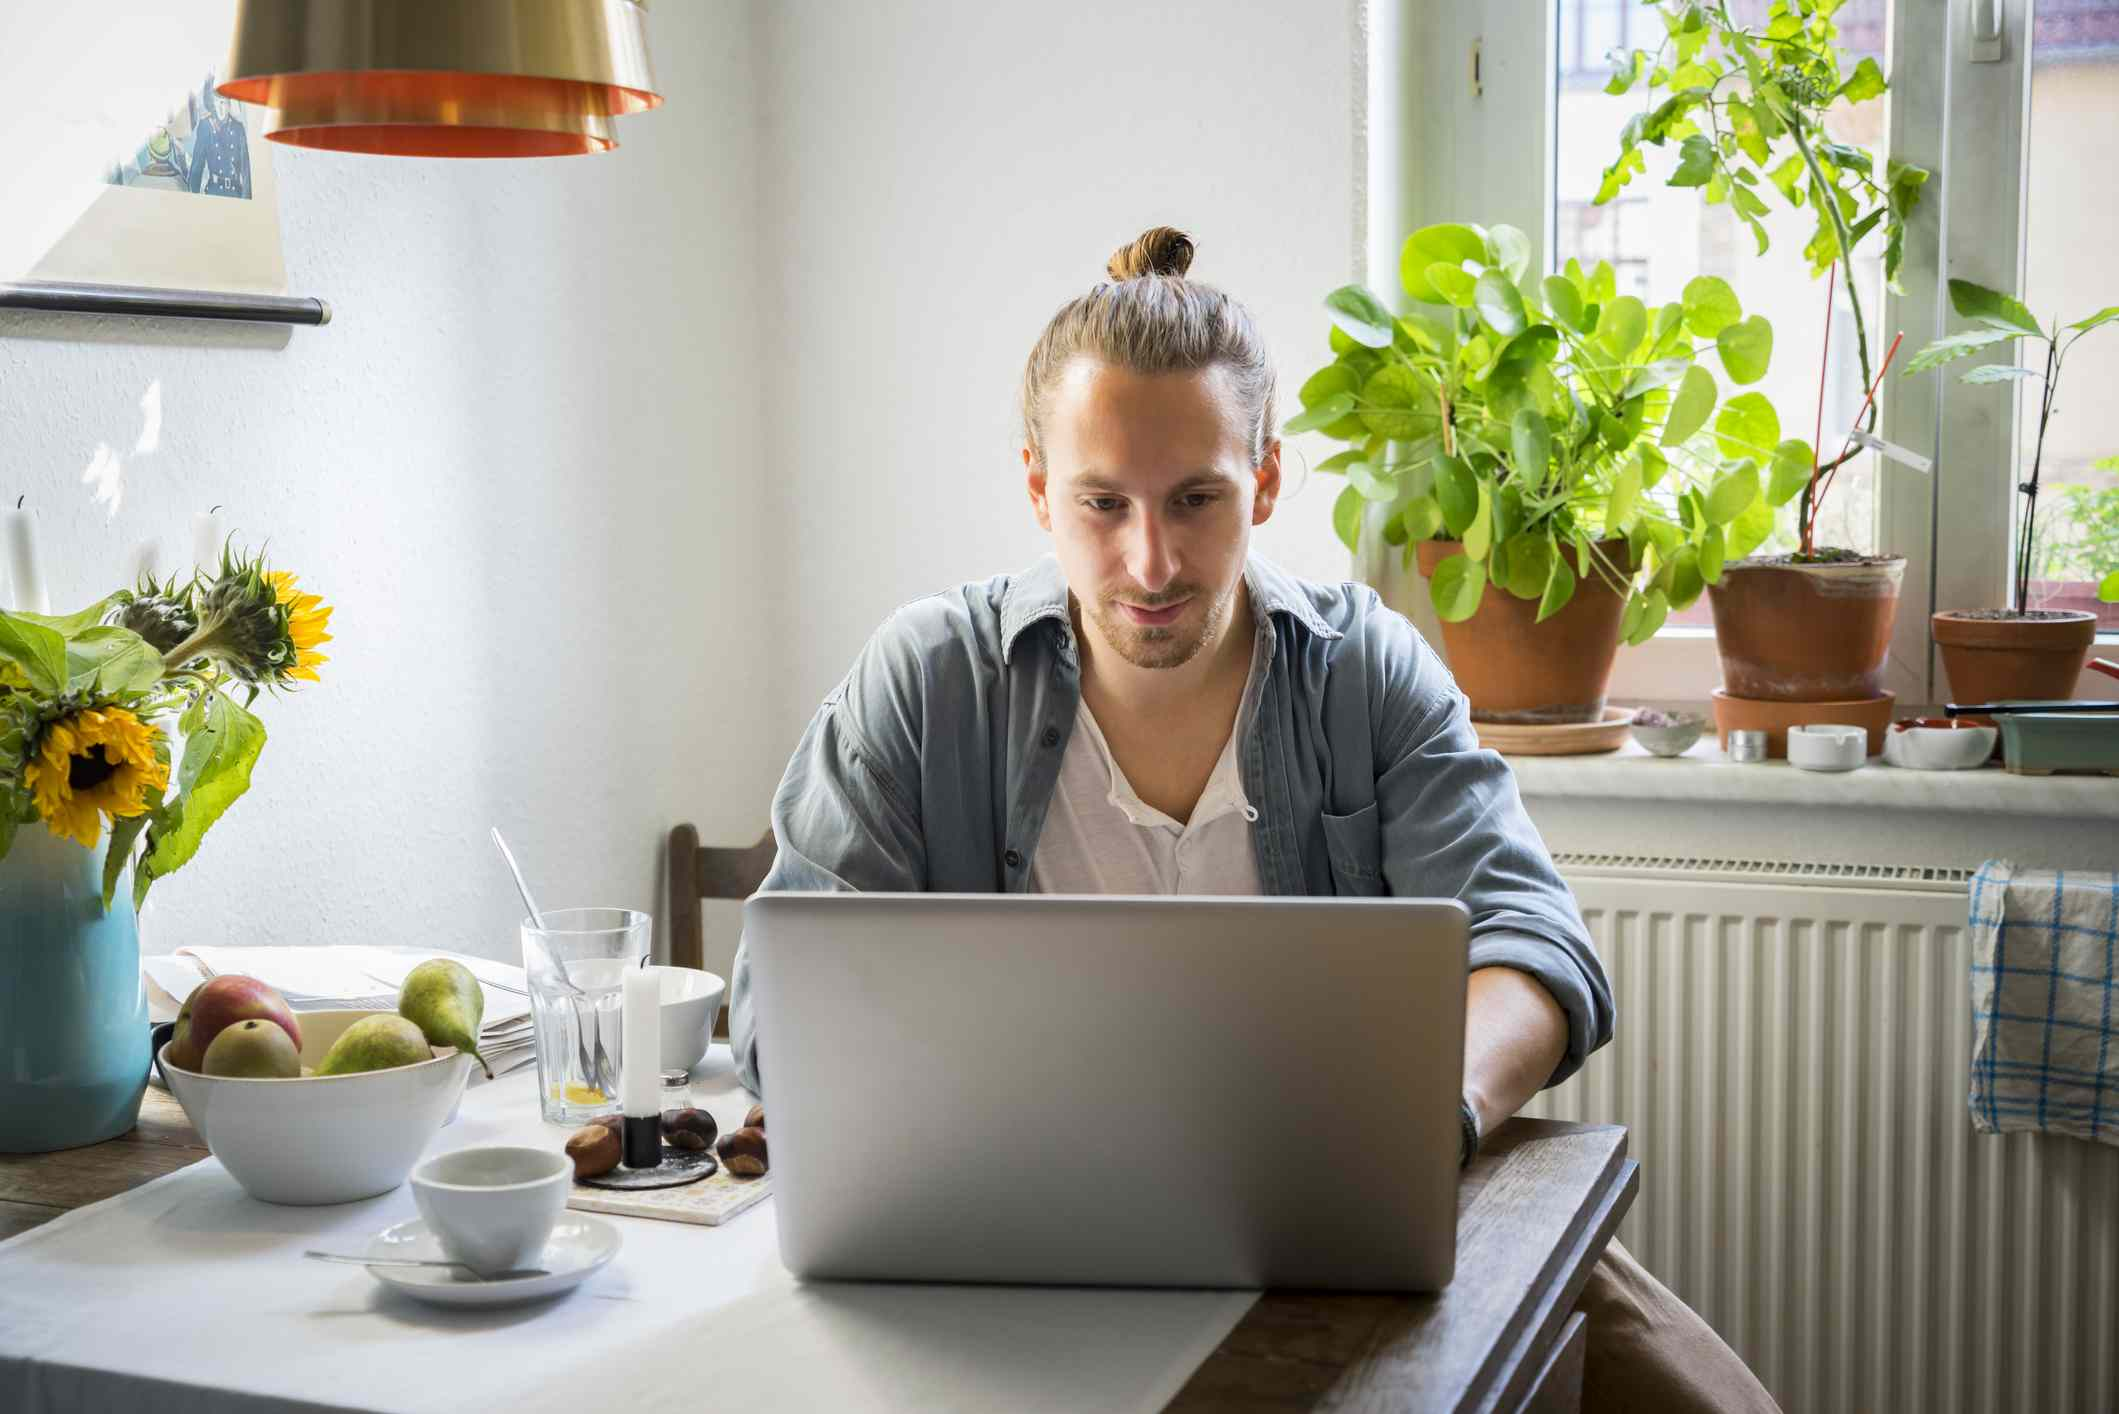 Young man uses laptop at dining table